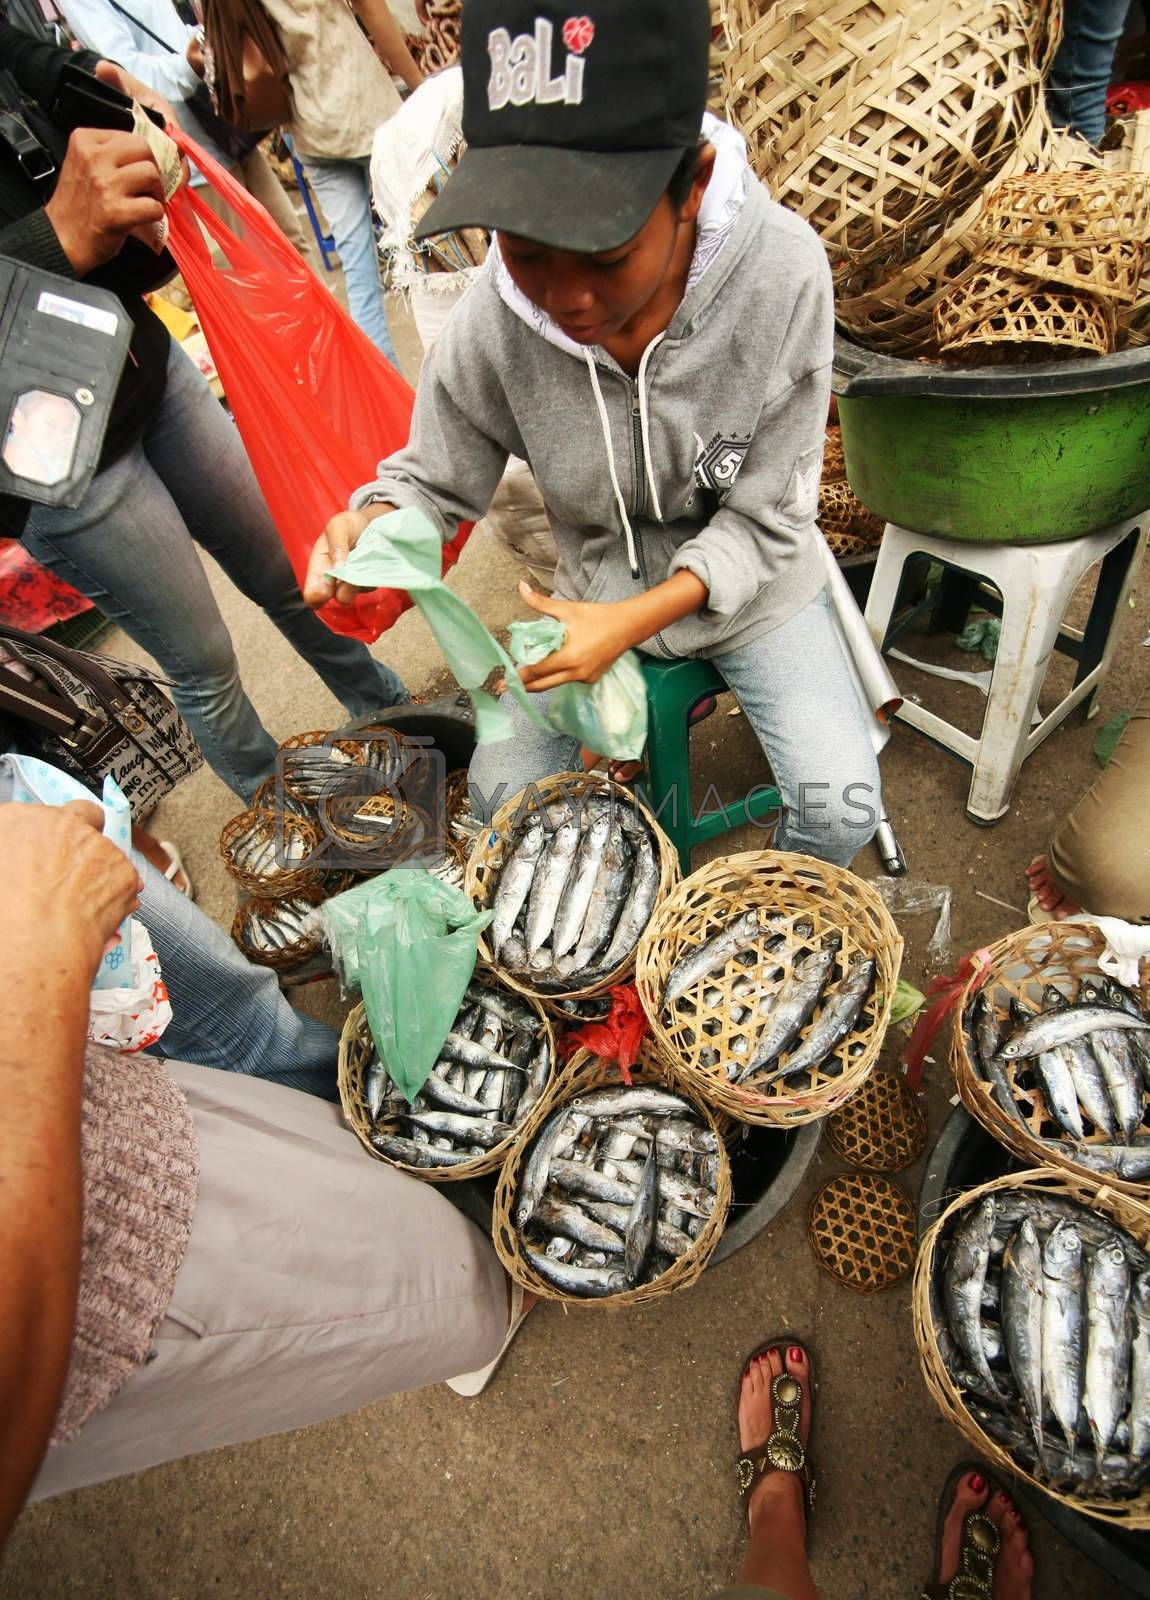 The Indonesian woman selling a fish